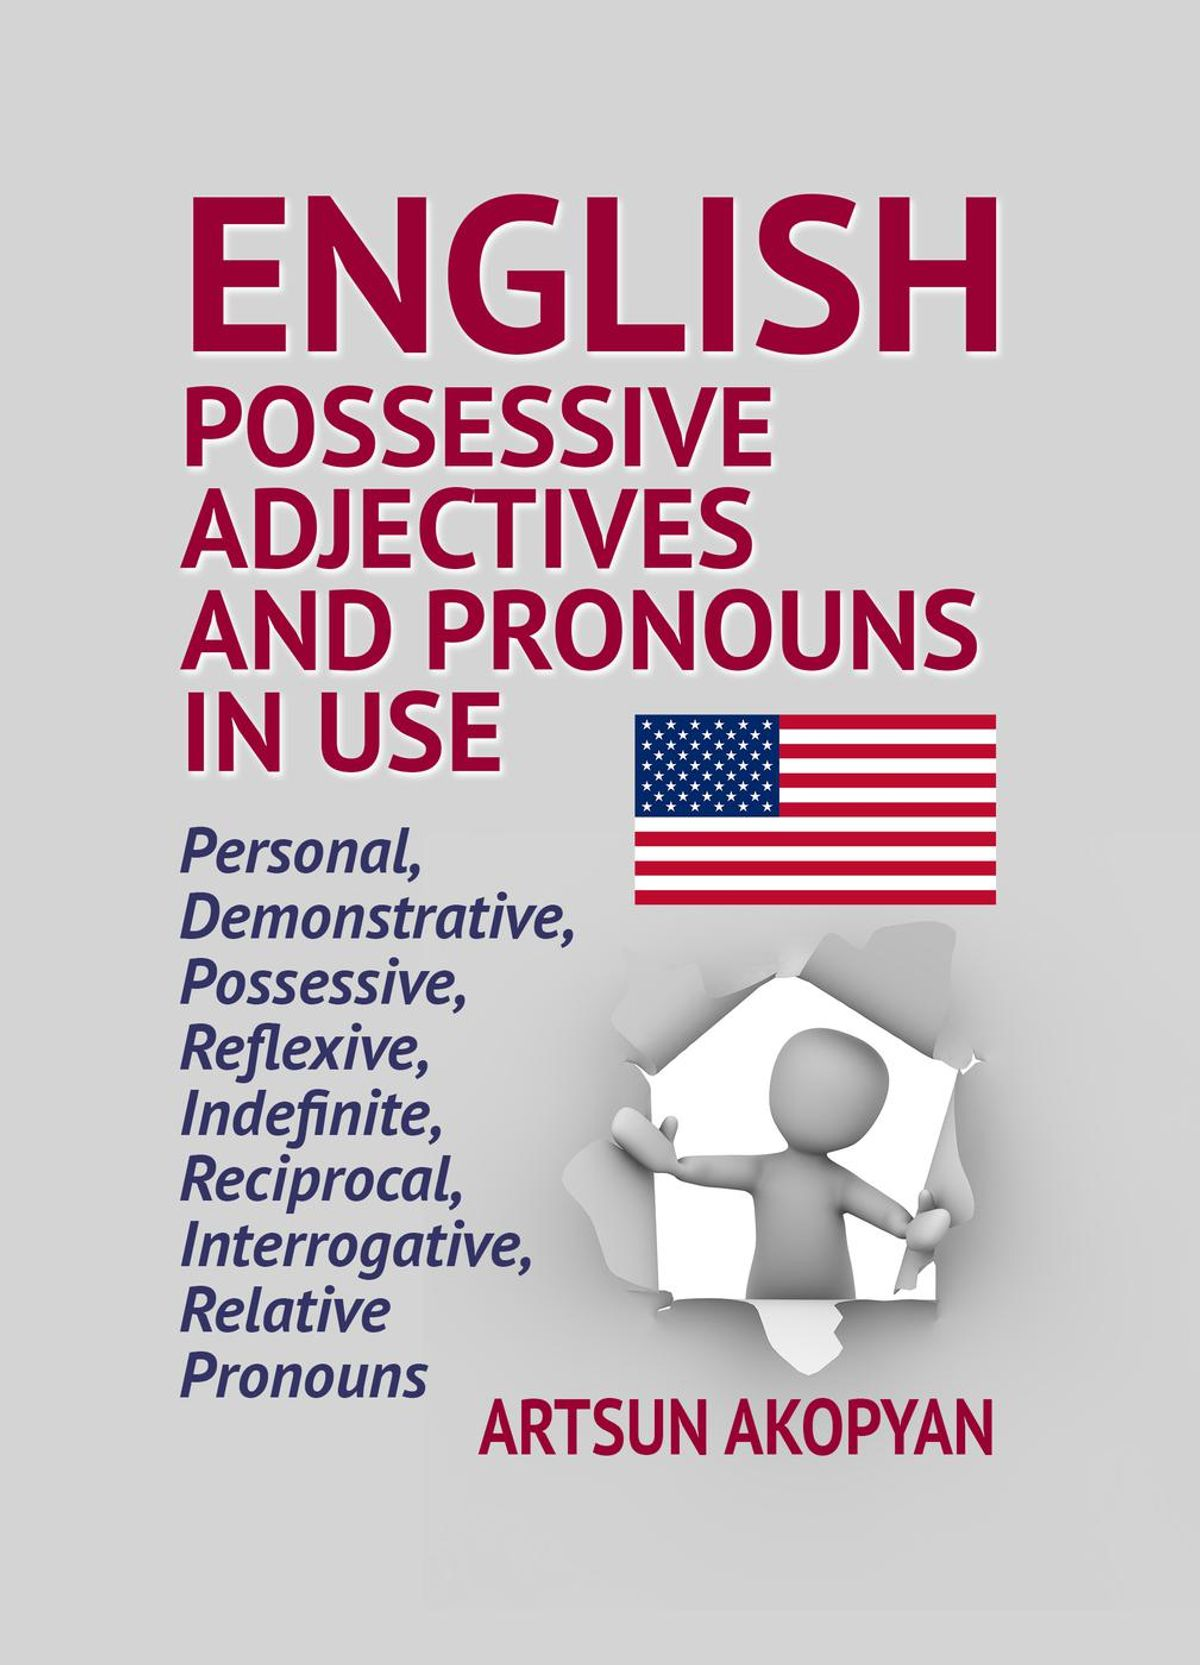 English Possessive Adjectives And Pronouns In Use